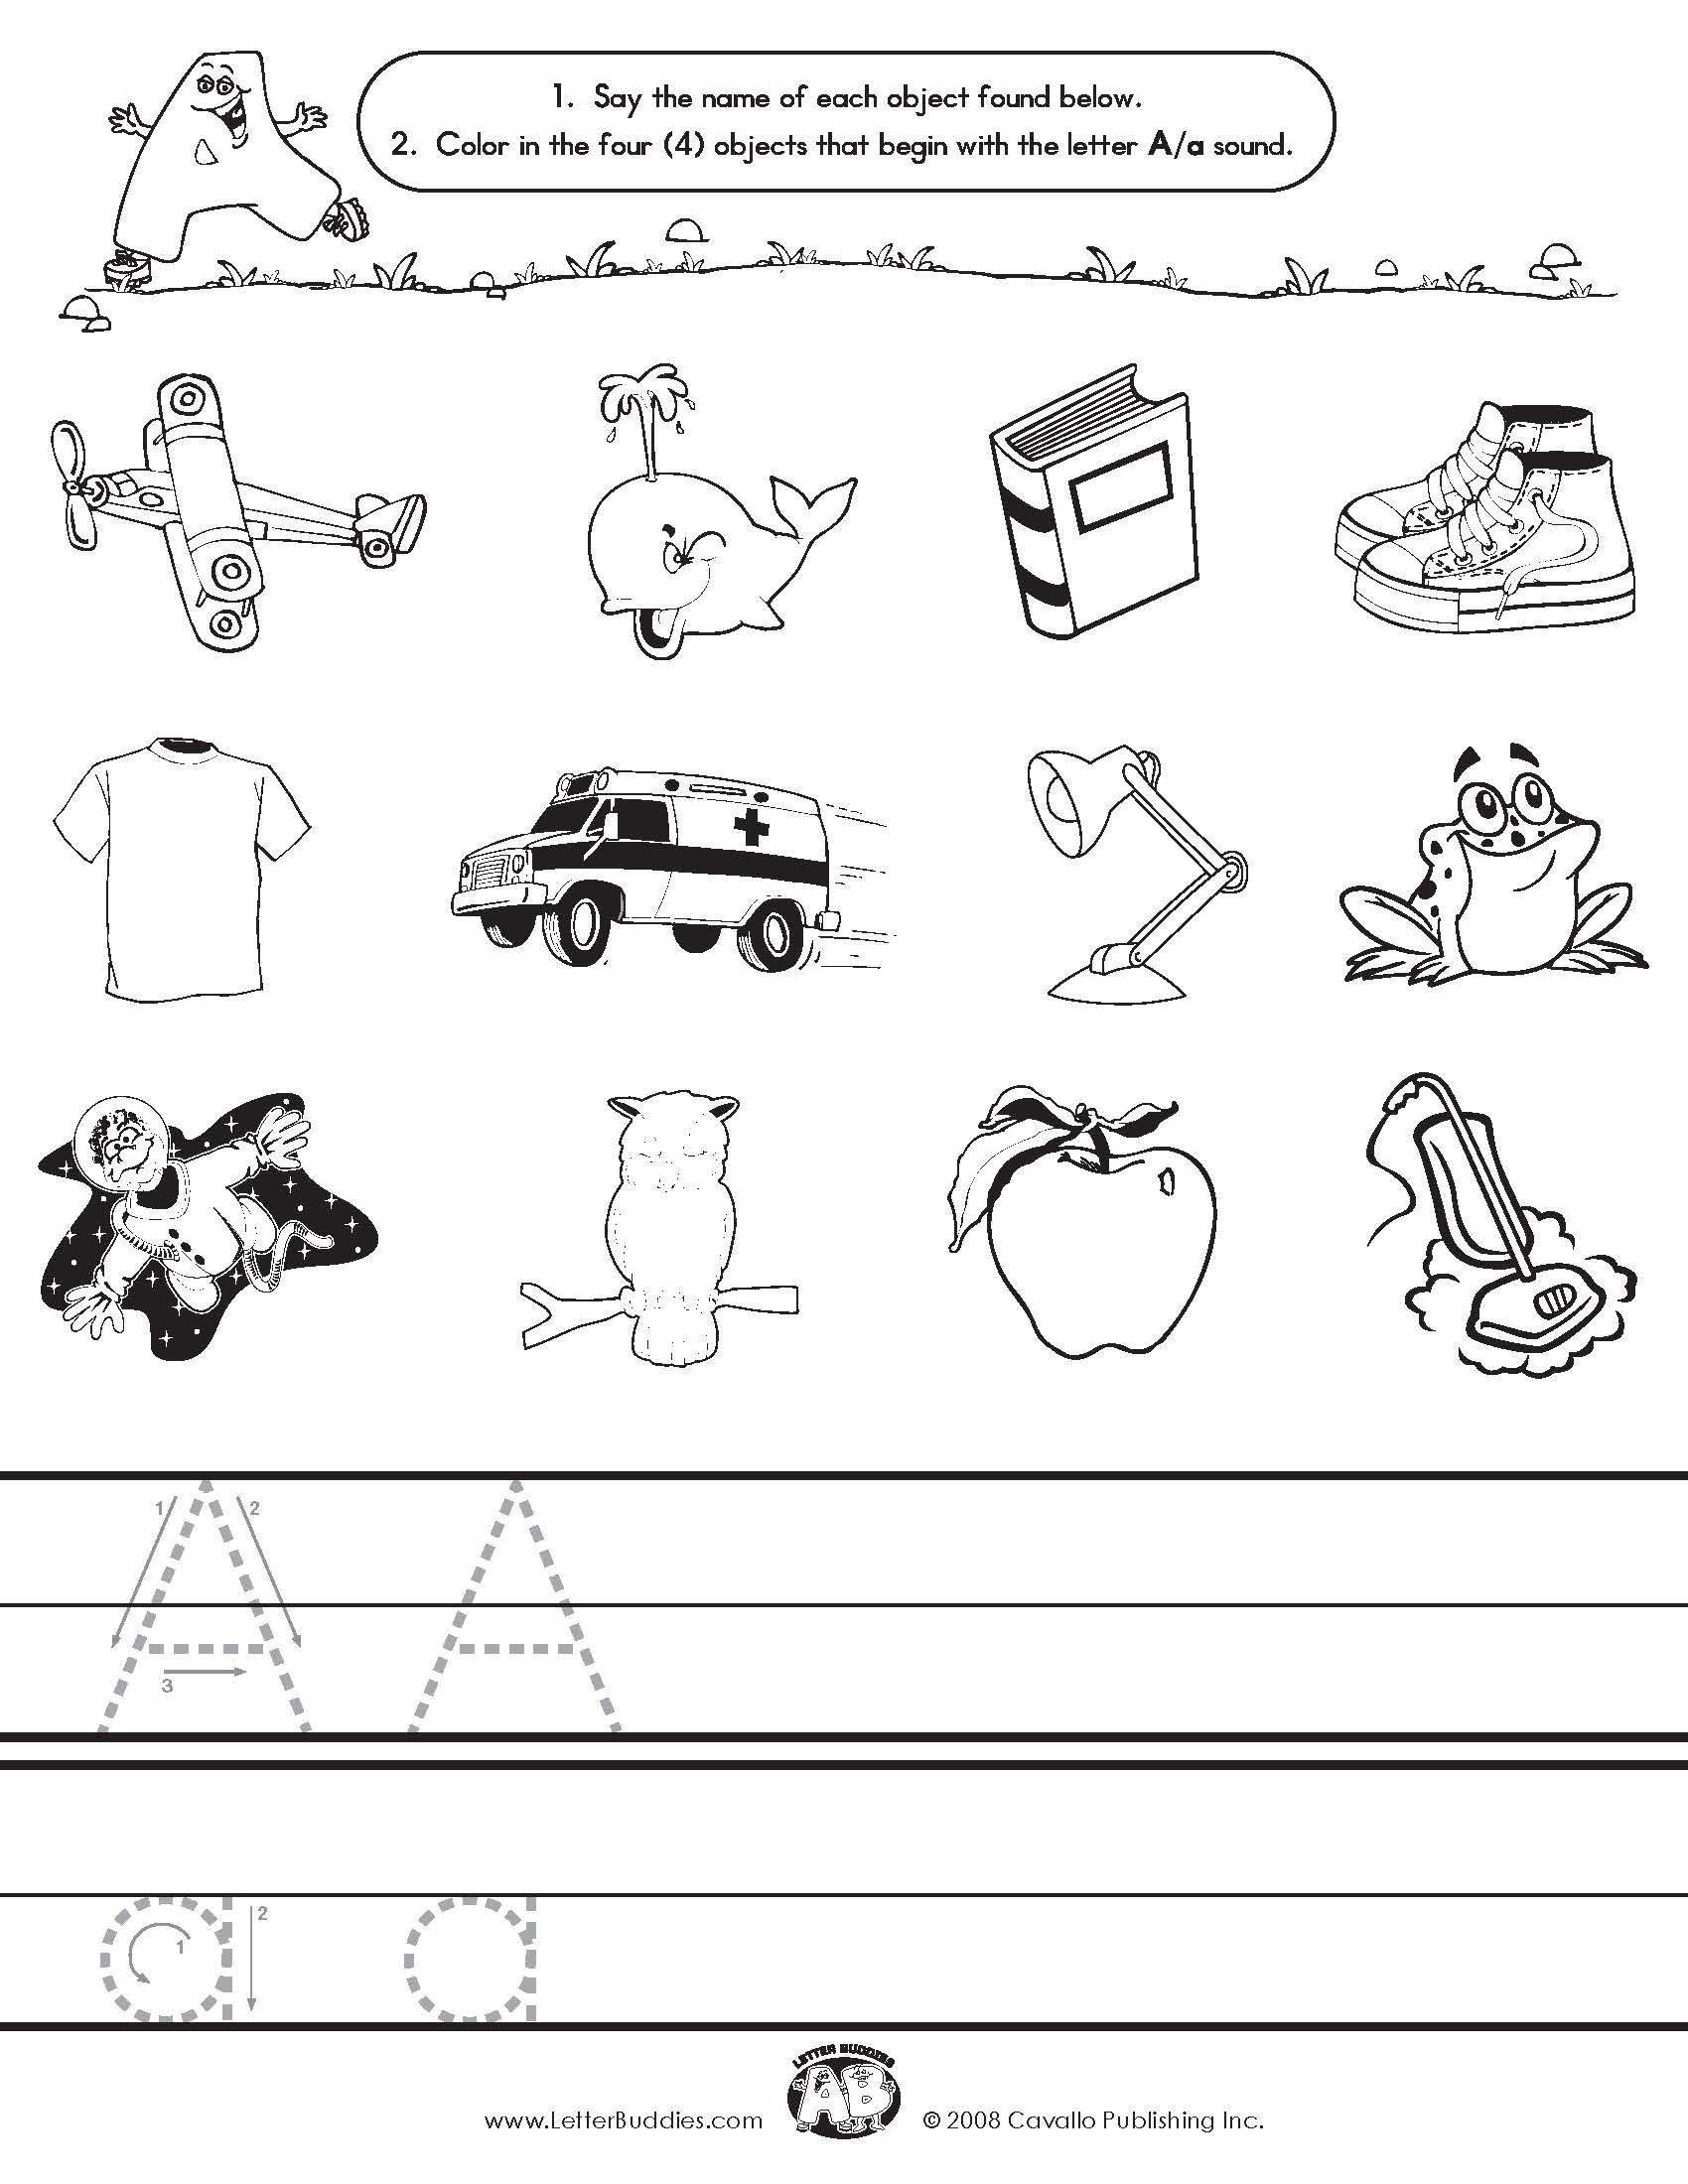 Worksheets Letter Sound Worksheets download main page part 4 letter buddies initial sounds worksheet a